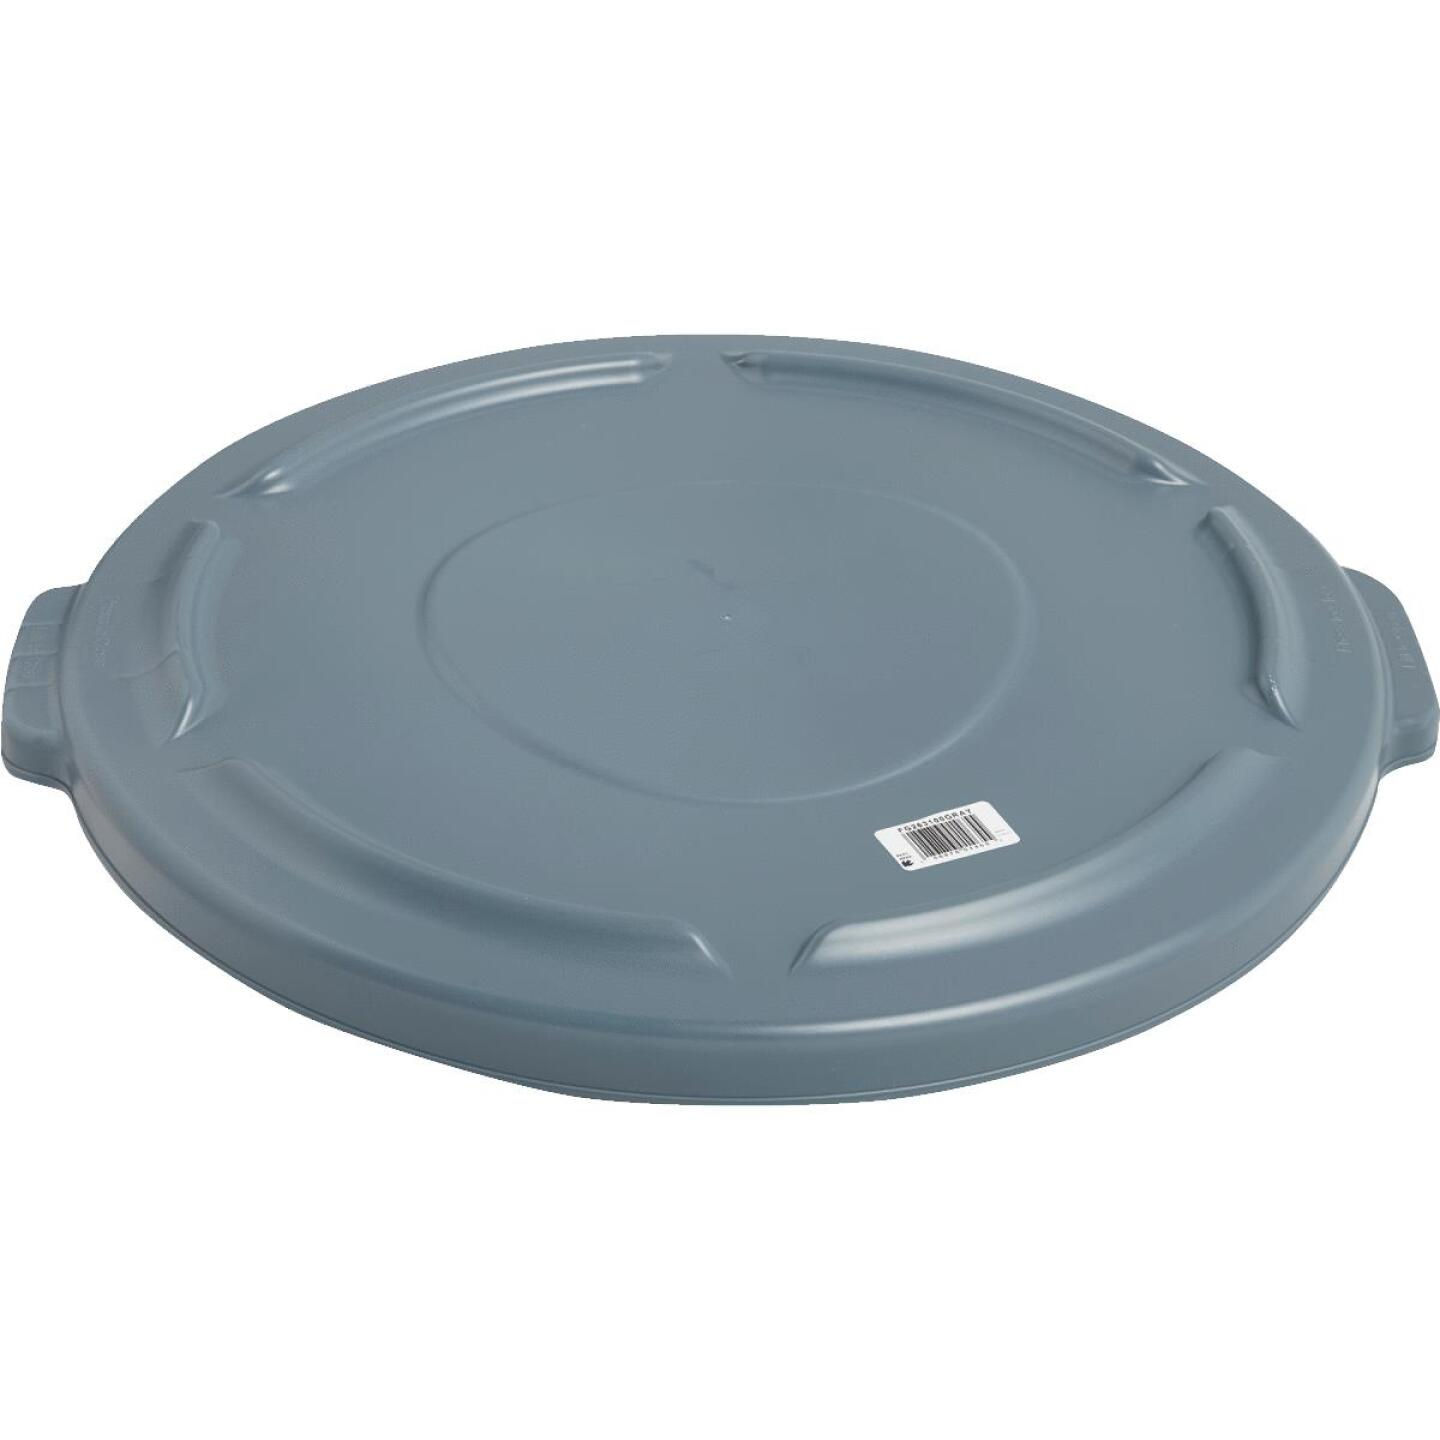 Rubbermaid Commercial Brute Gray Trash Can Lid for 32 Gal. Trash Can Image 2